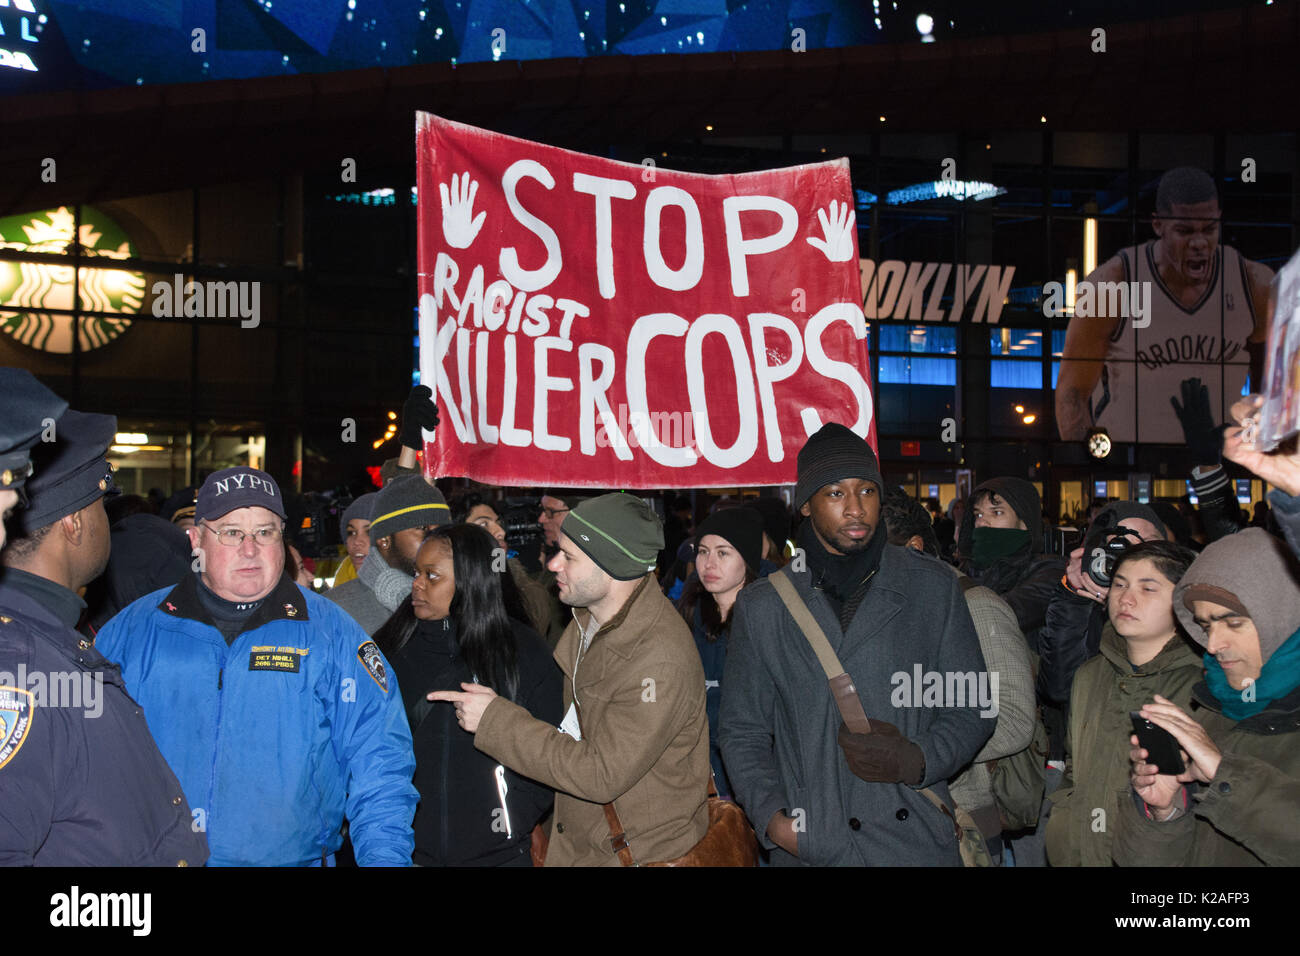 Black Lives Matter activists protested at Barclays Center after a grand jury failed to indict officer in Eric Garner case. - Stock Image